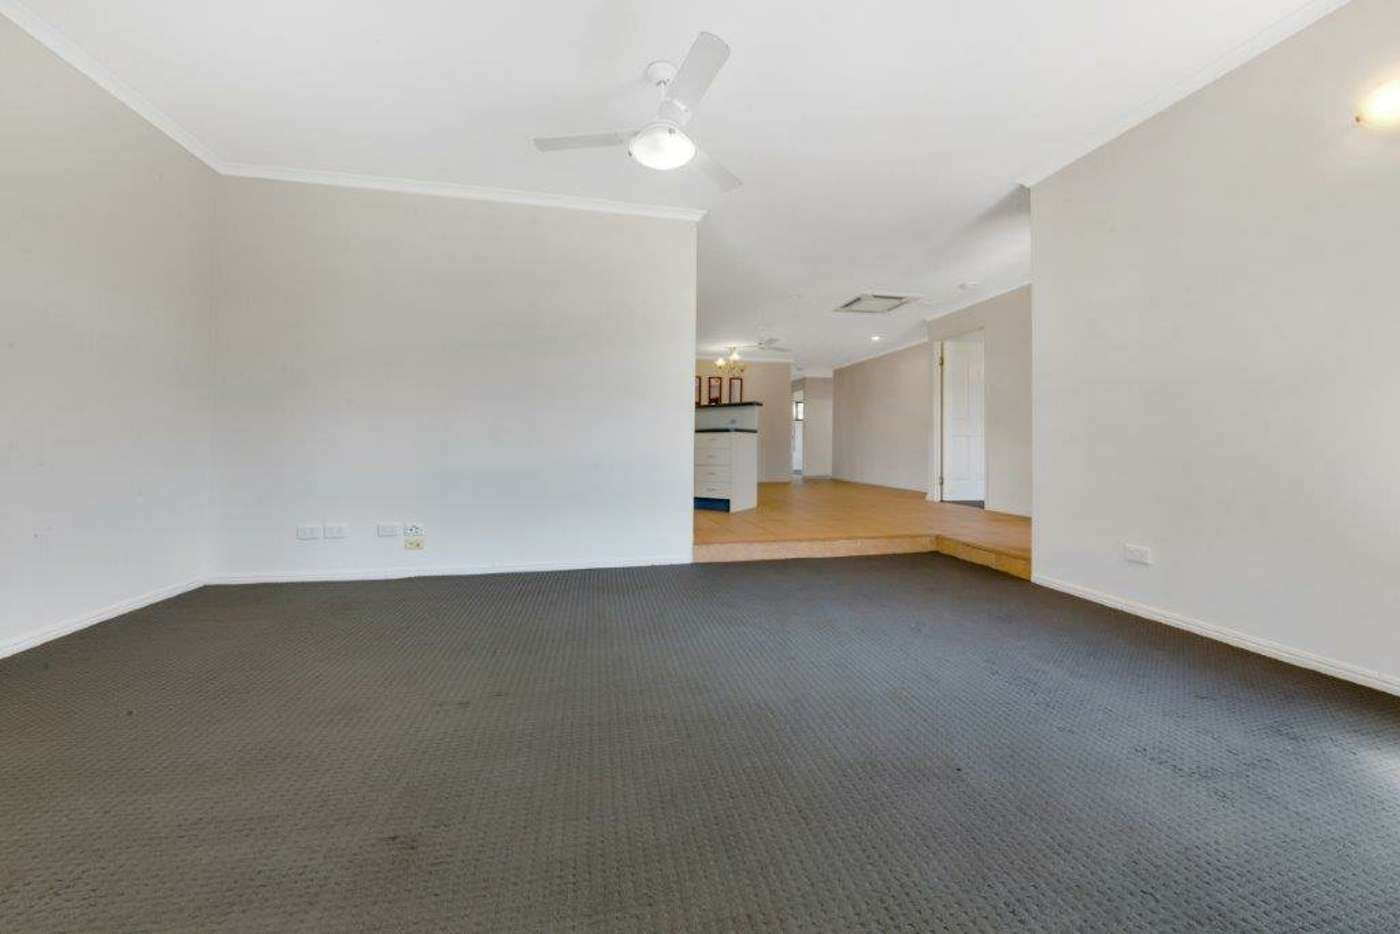 Sixth view of Homely house listing, 66 Witney Street, Telina QLD 4680